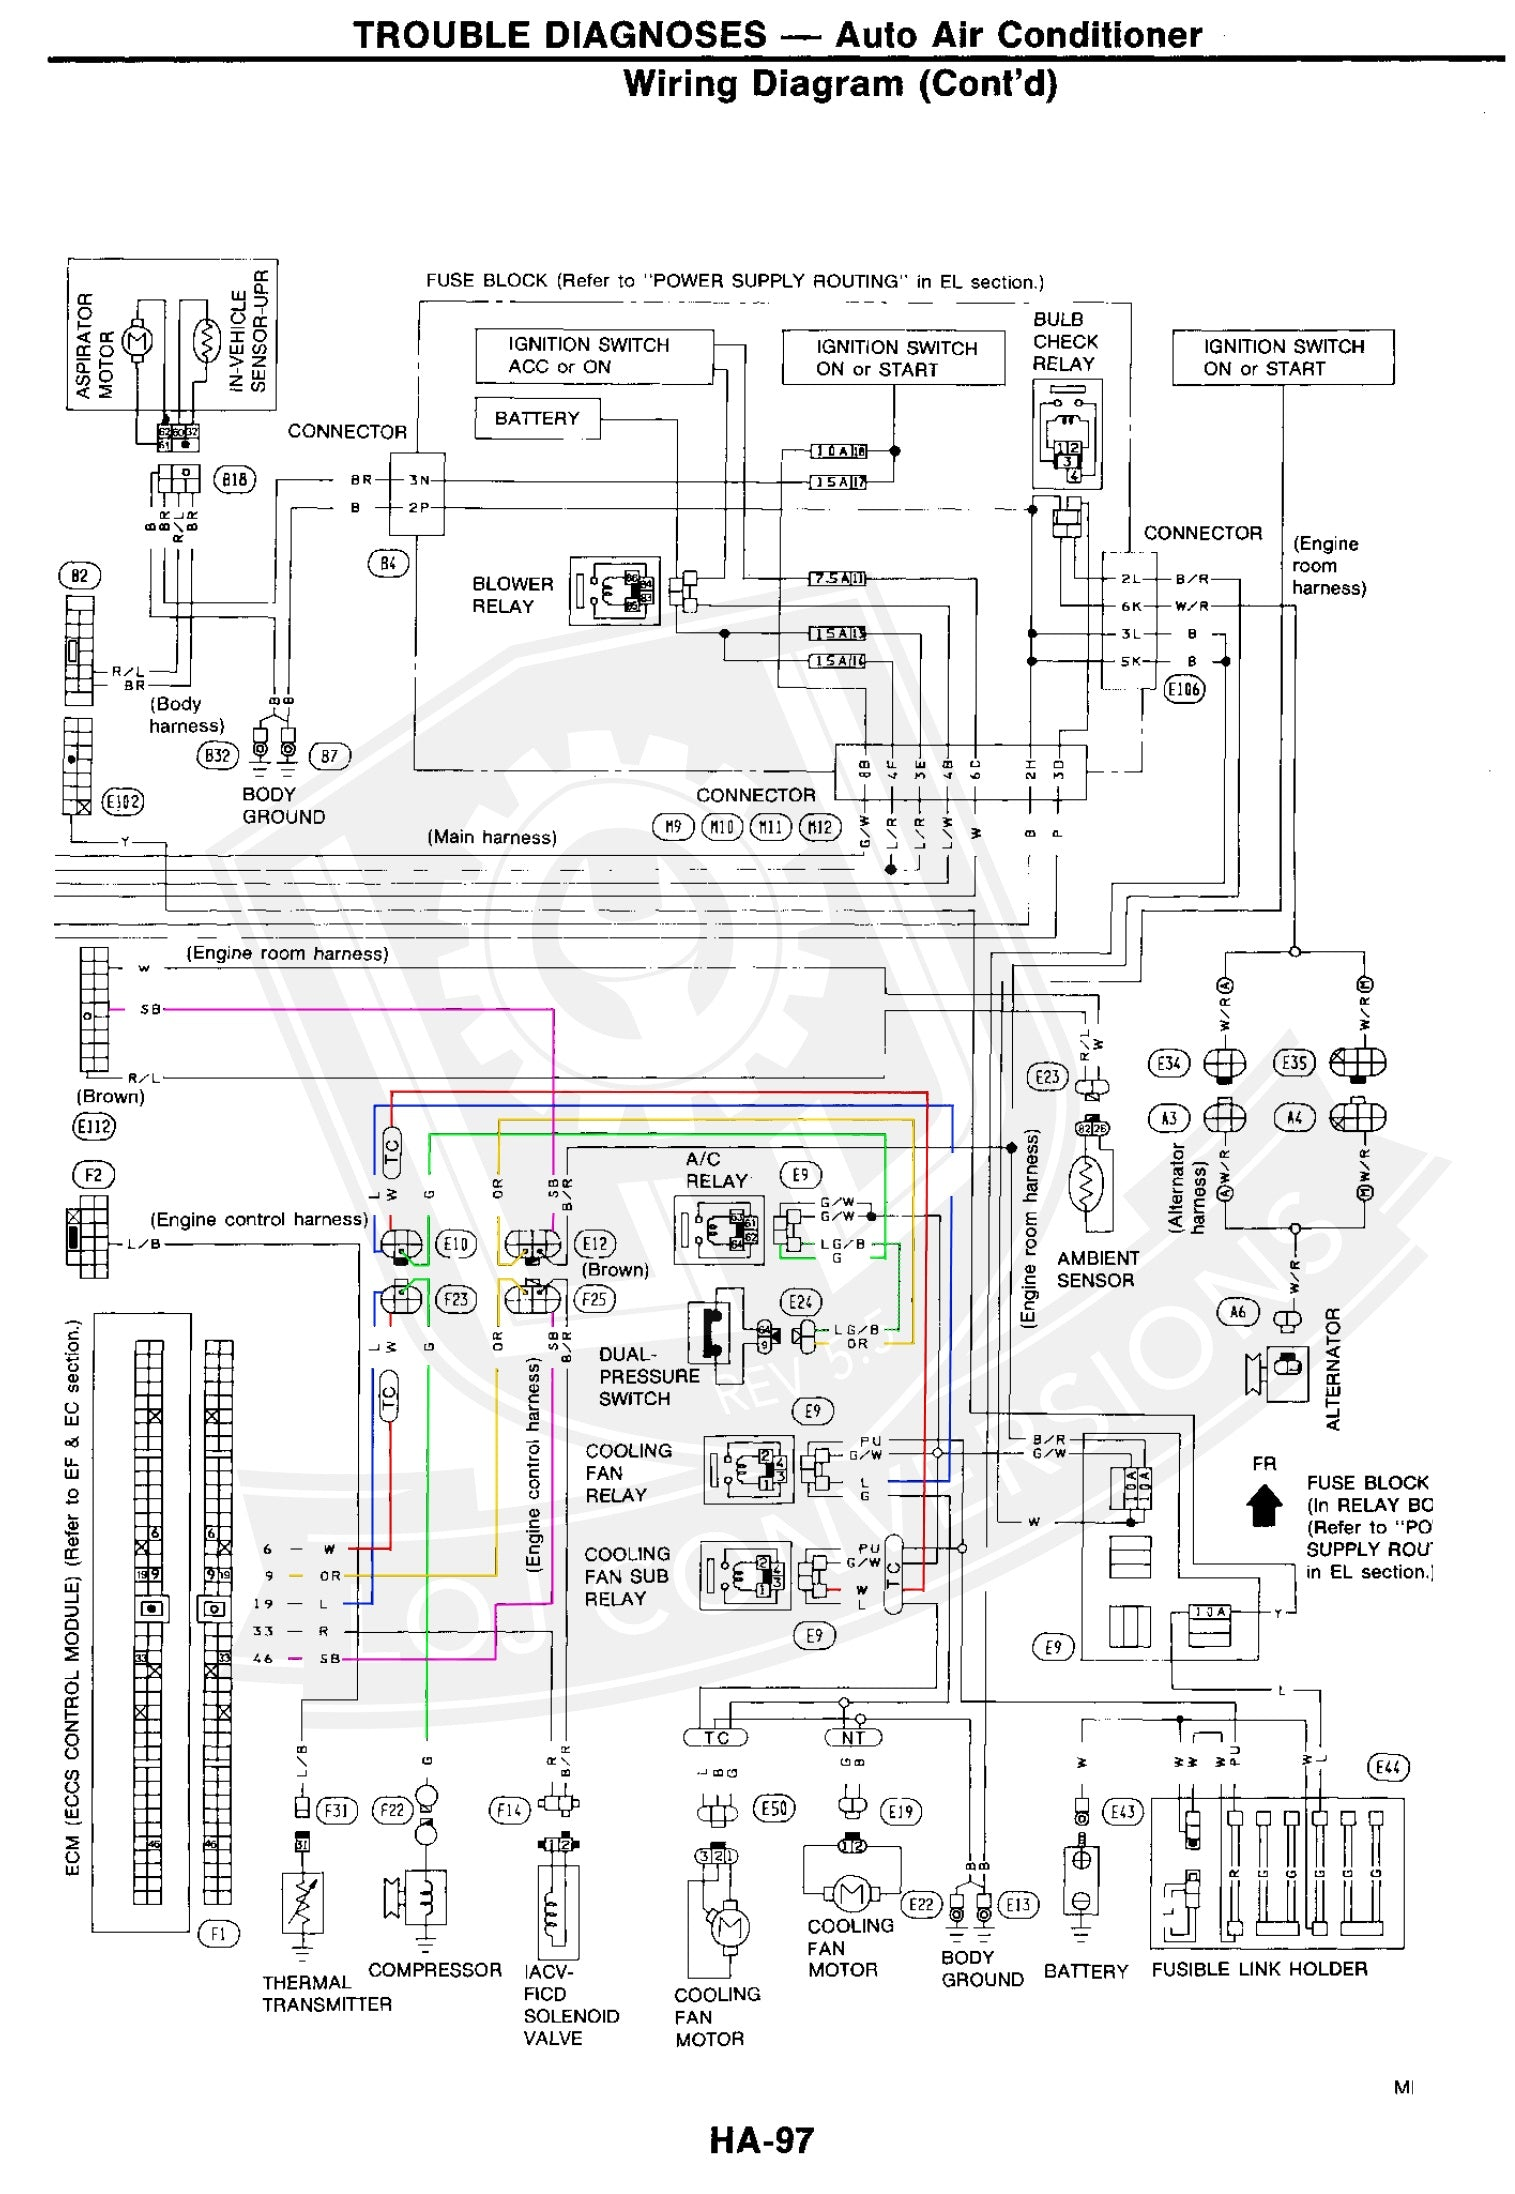 Caravan Transmission Wiring Diagram on 2002 caravan cooling system, 2002 caravan fuel system, 2003 caravan wiring diagram, 2002 caravan radiator diagram, dodge wiring diagram, 2002 caravan rear suspension, 2002 caravan wiper motor, 2002 caravan parts, 2001 caravan wiring diagram,